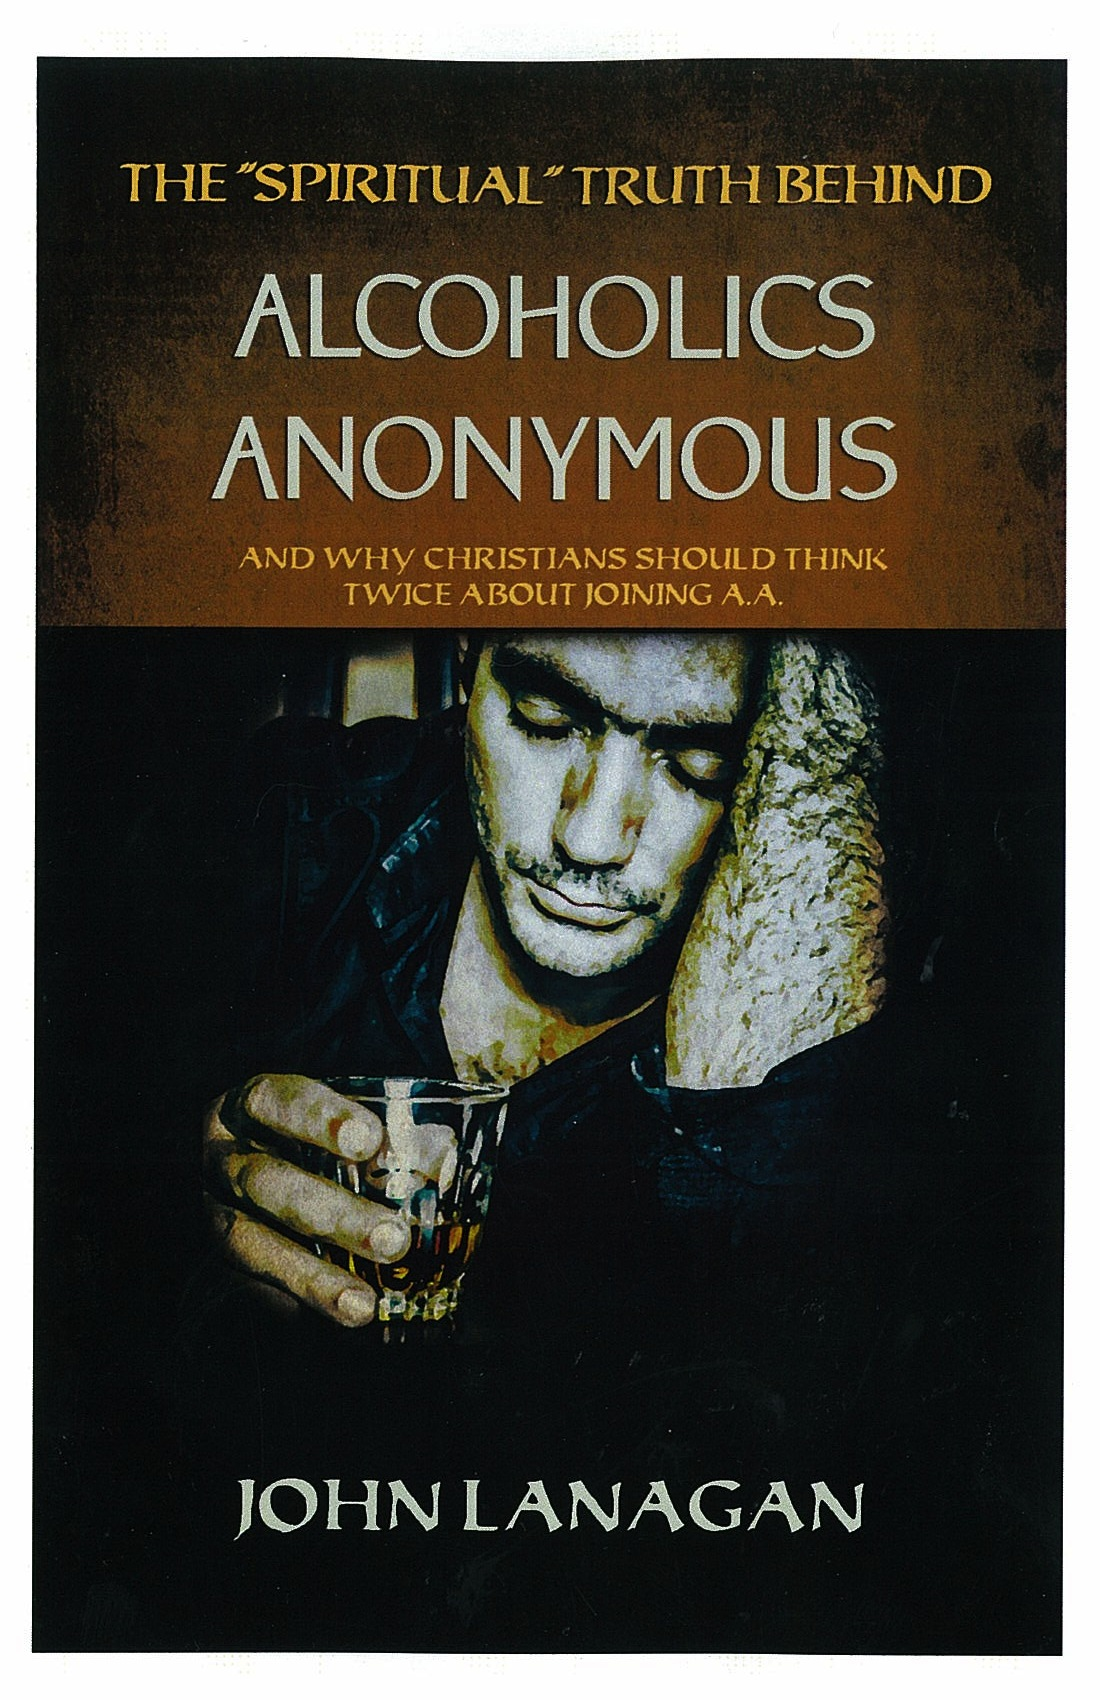 alcoholic anonymous reaction paper essay View and download alcoholics anonymous essays examples also discover topics, titles, outlines, thesis statements, and conclusions for your alcoholics anonymous essay.